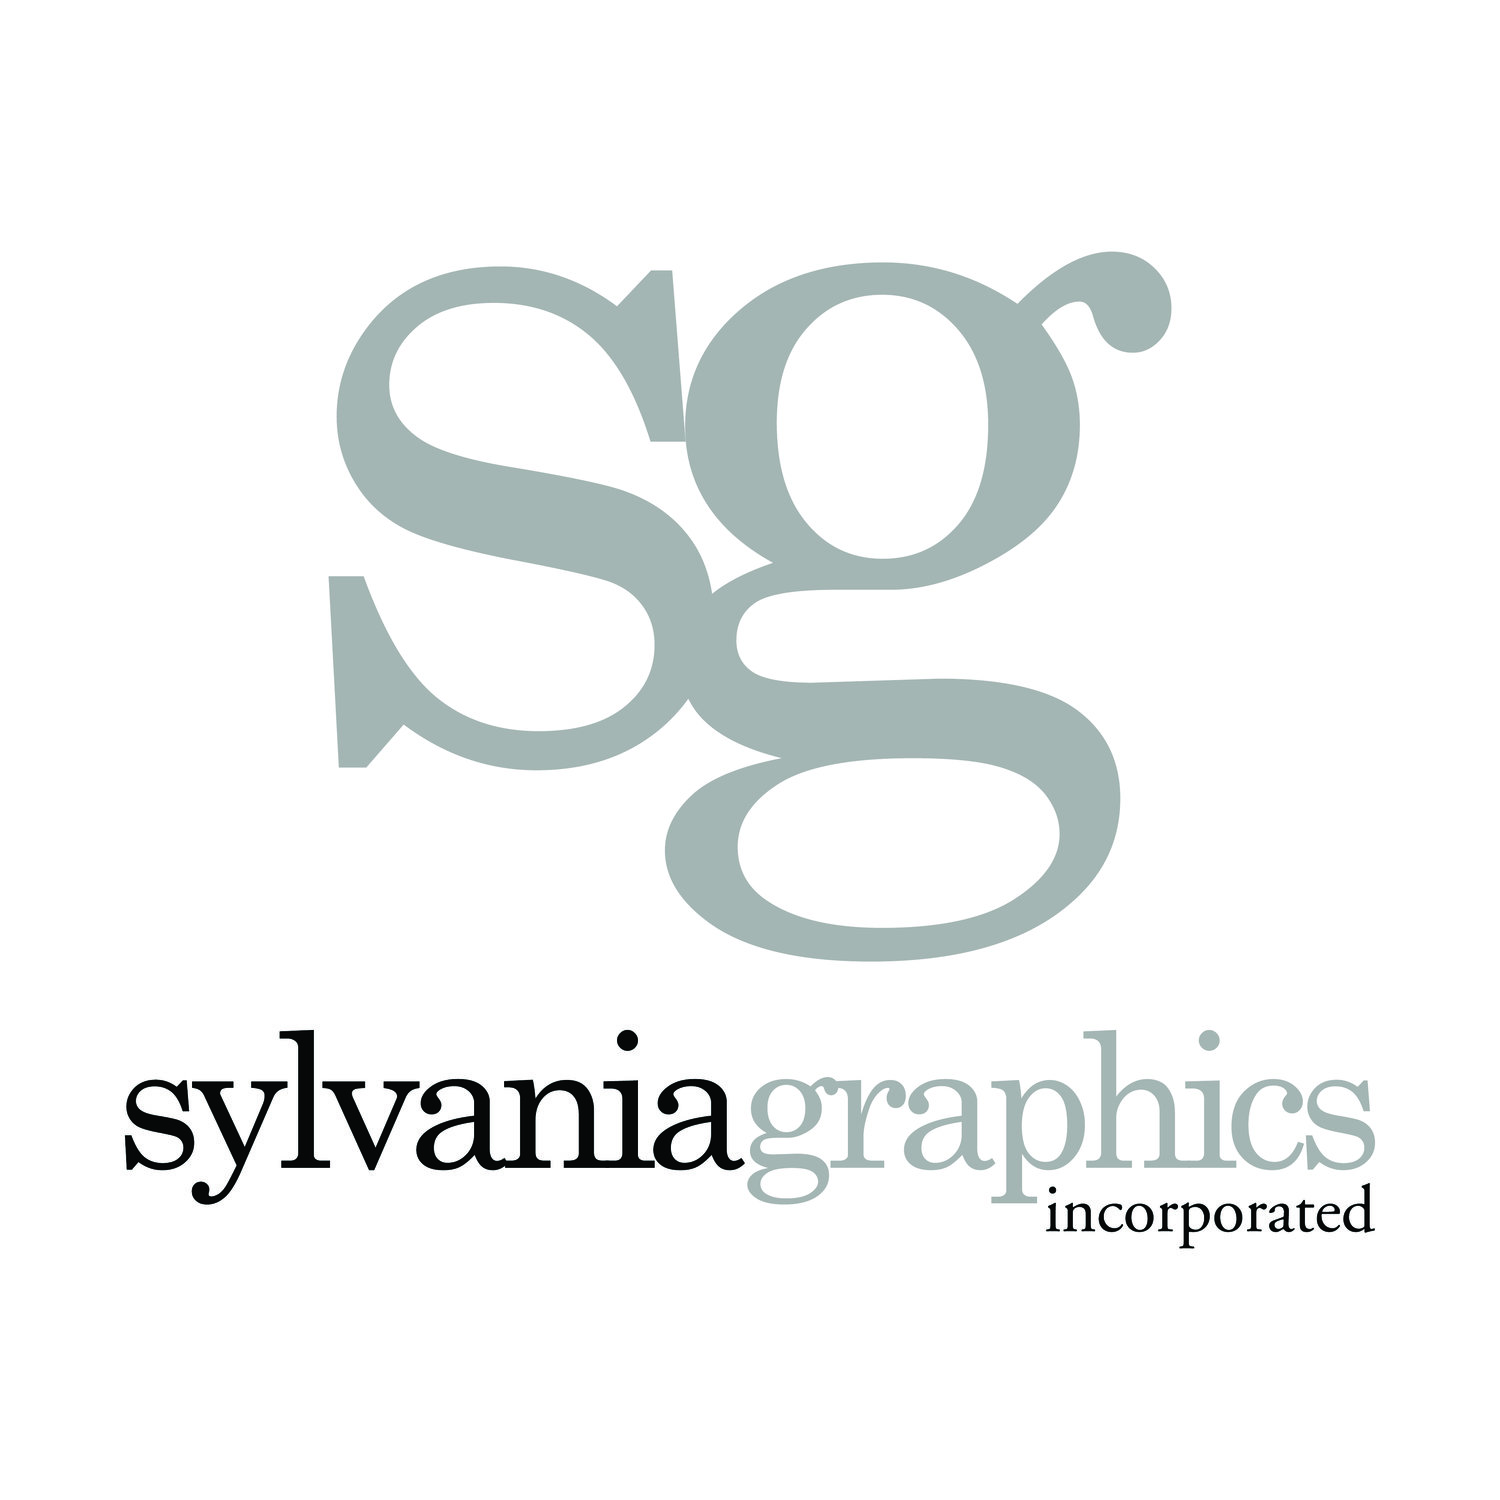 Sylvania Graphics Incorporated